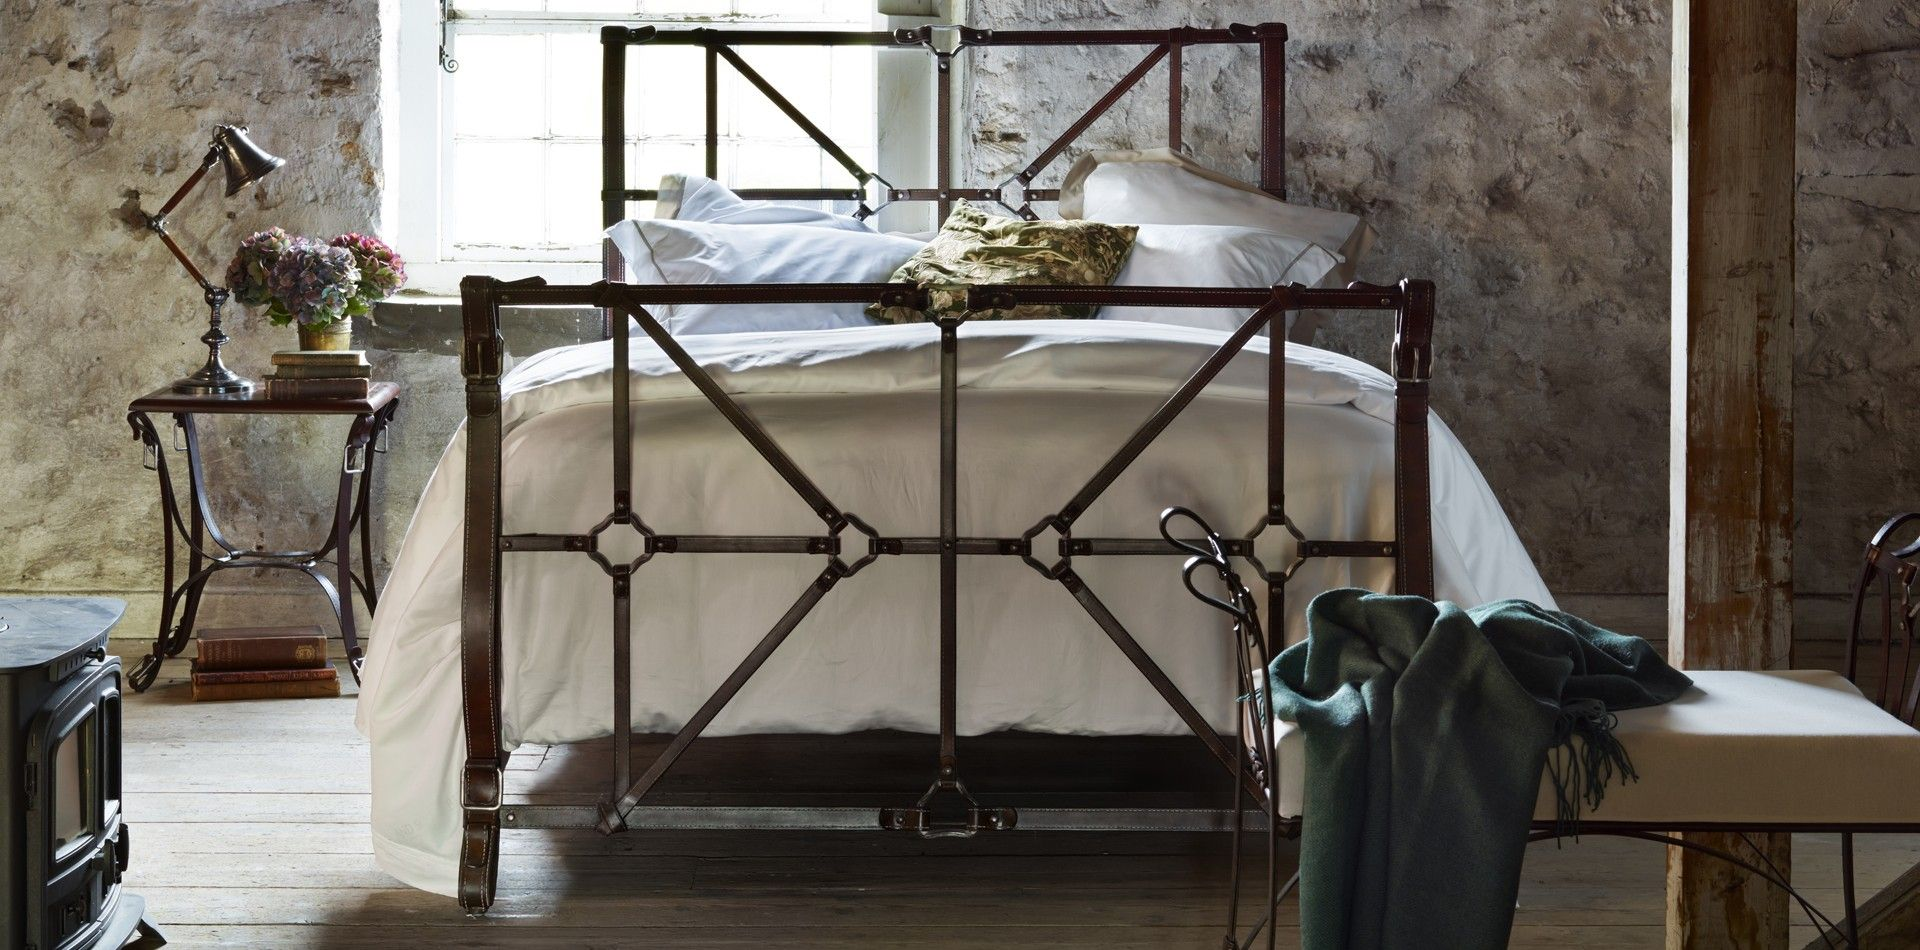 Uncategorized Handel Contemporary handel contemporary cast iron bed and so to equestrian bed